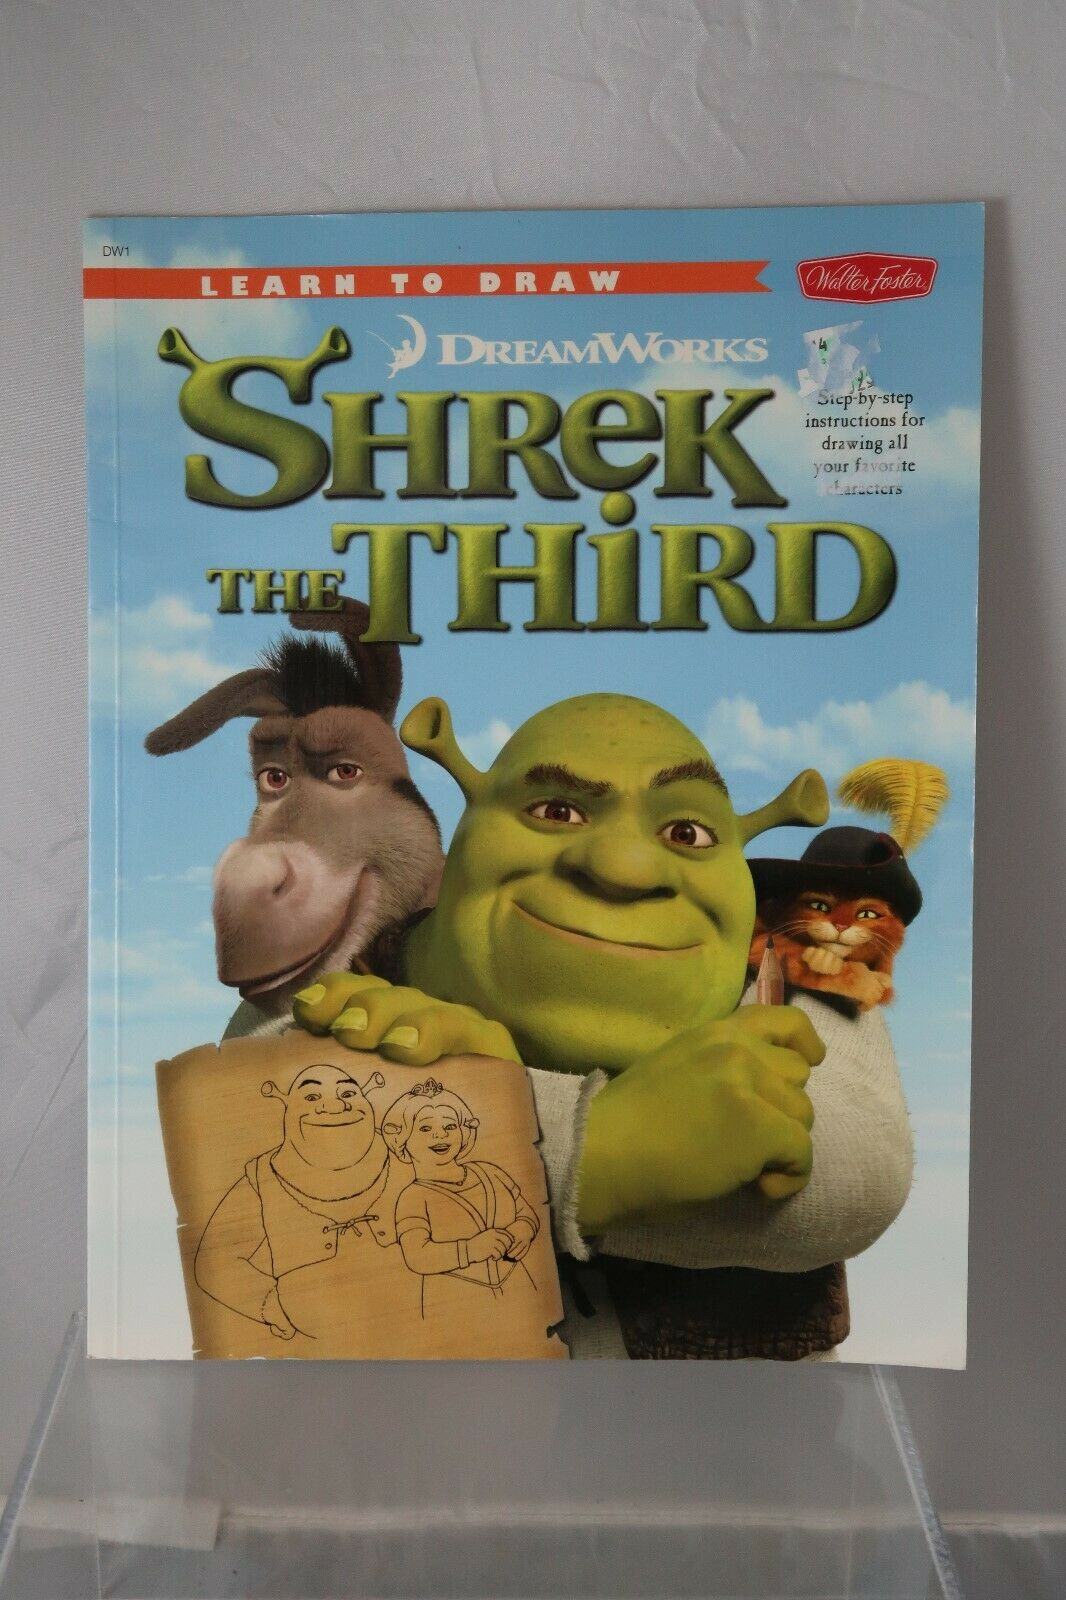 Learn To Draw Ser Learn To Draw Dreamworks Shrek The Third Step By Step Instructions For Drawing All Your Favorite Characters By Dreamworks Inc Staff 2007 Perfect For Sale Online Ebay